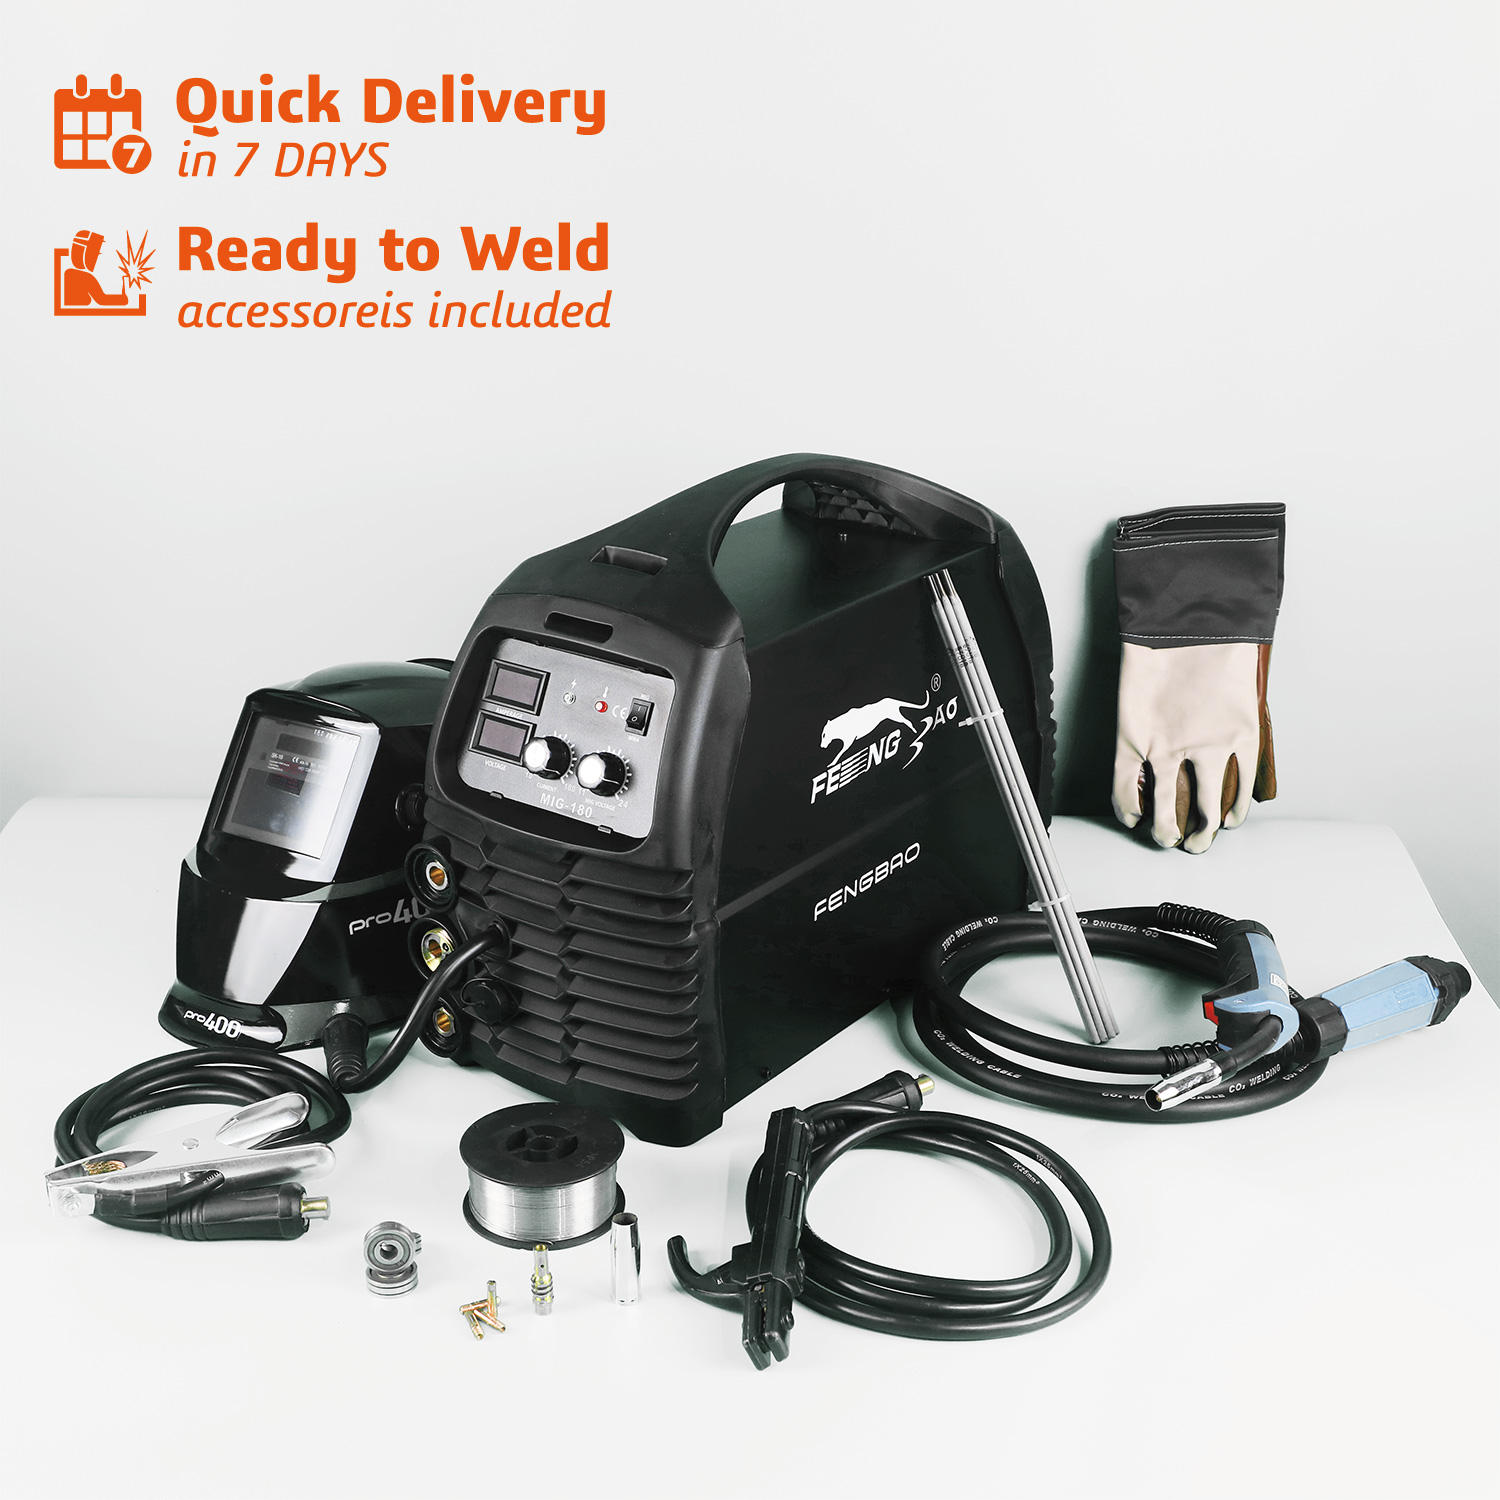 ECO 3 in 1 Inverter Welding Machine MMA/FLUX/MAG/MIG welder